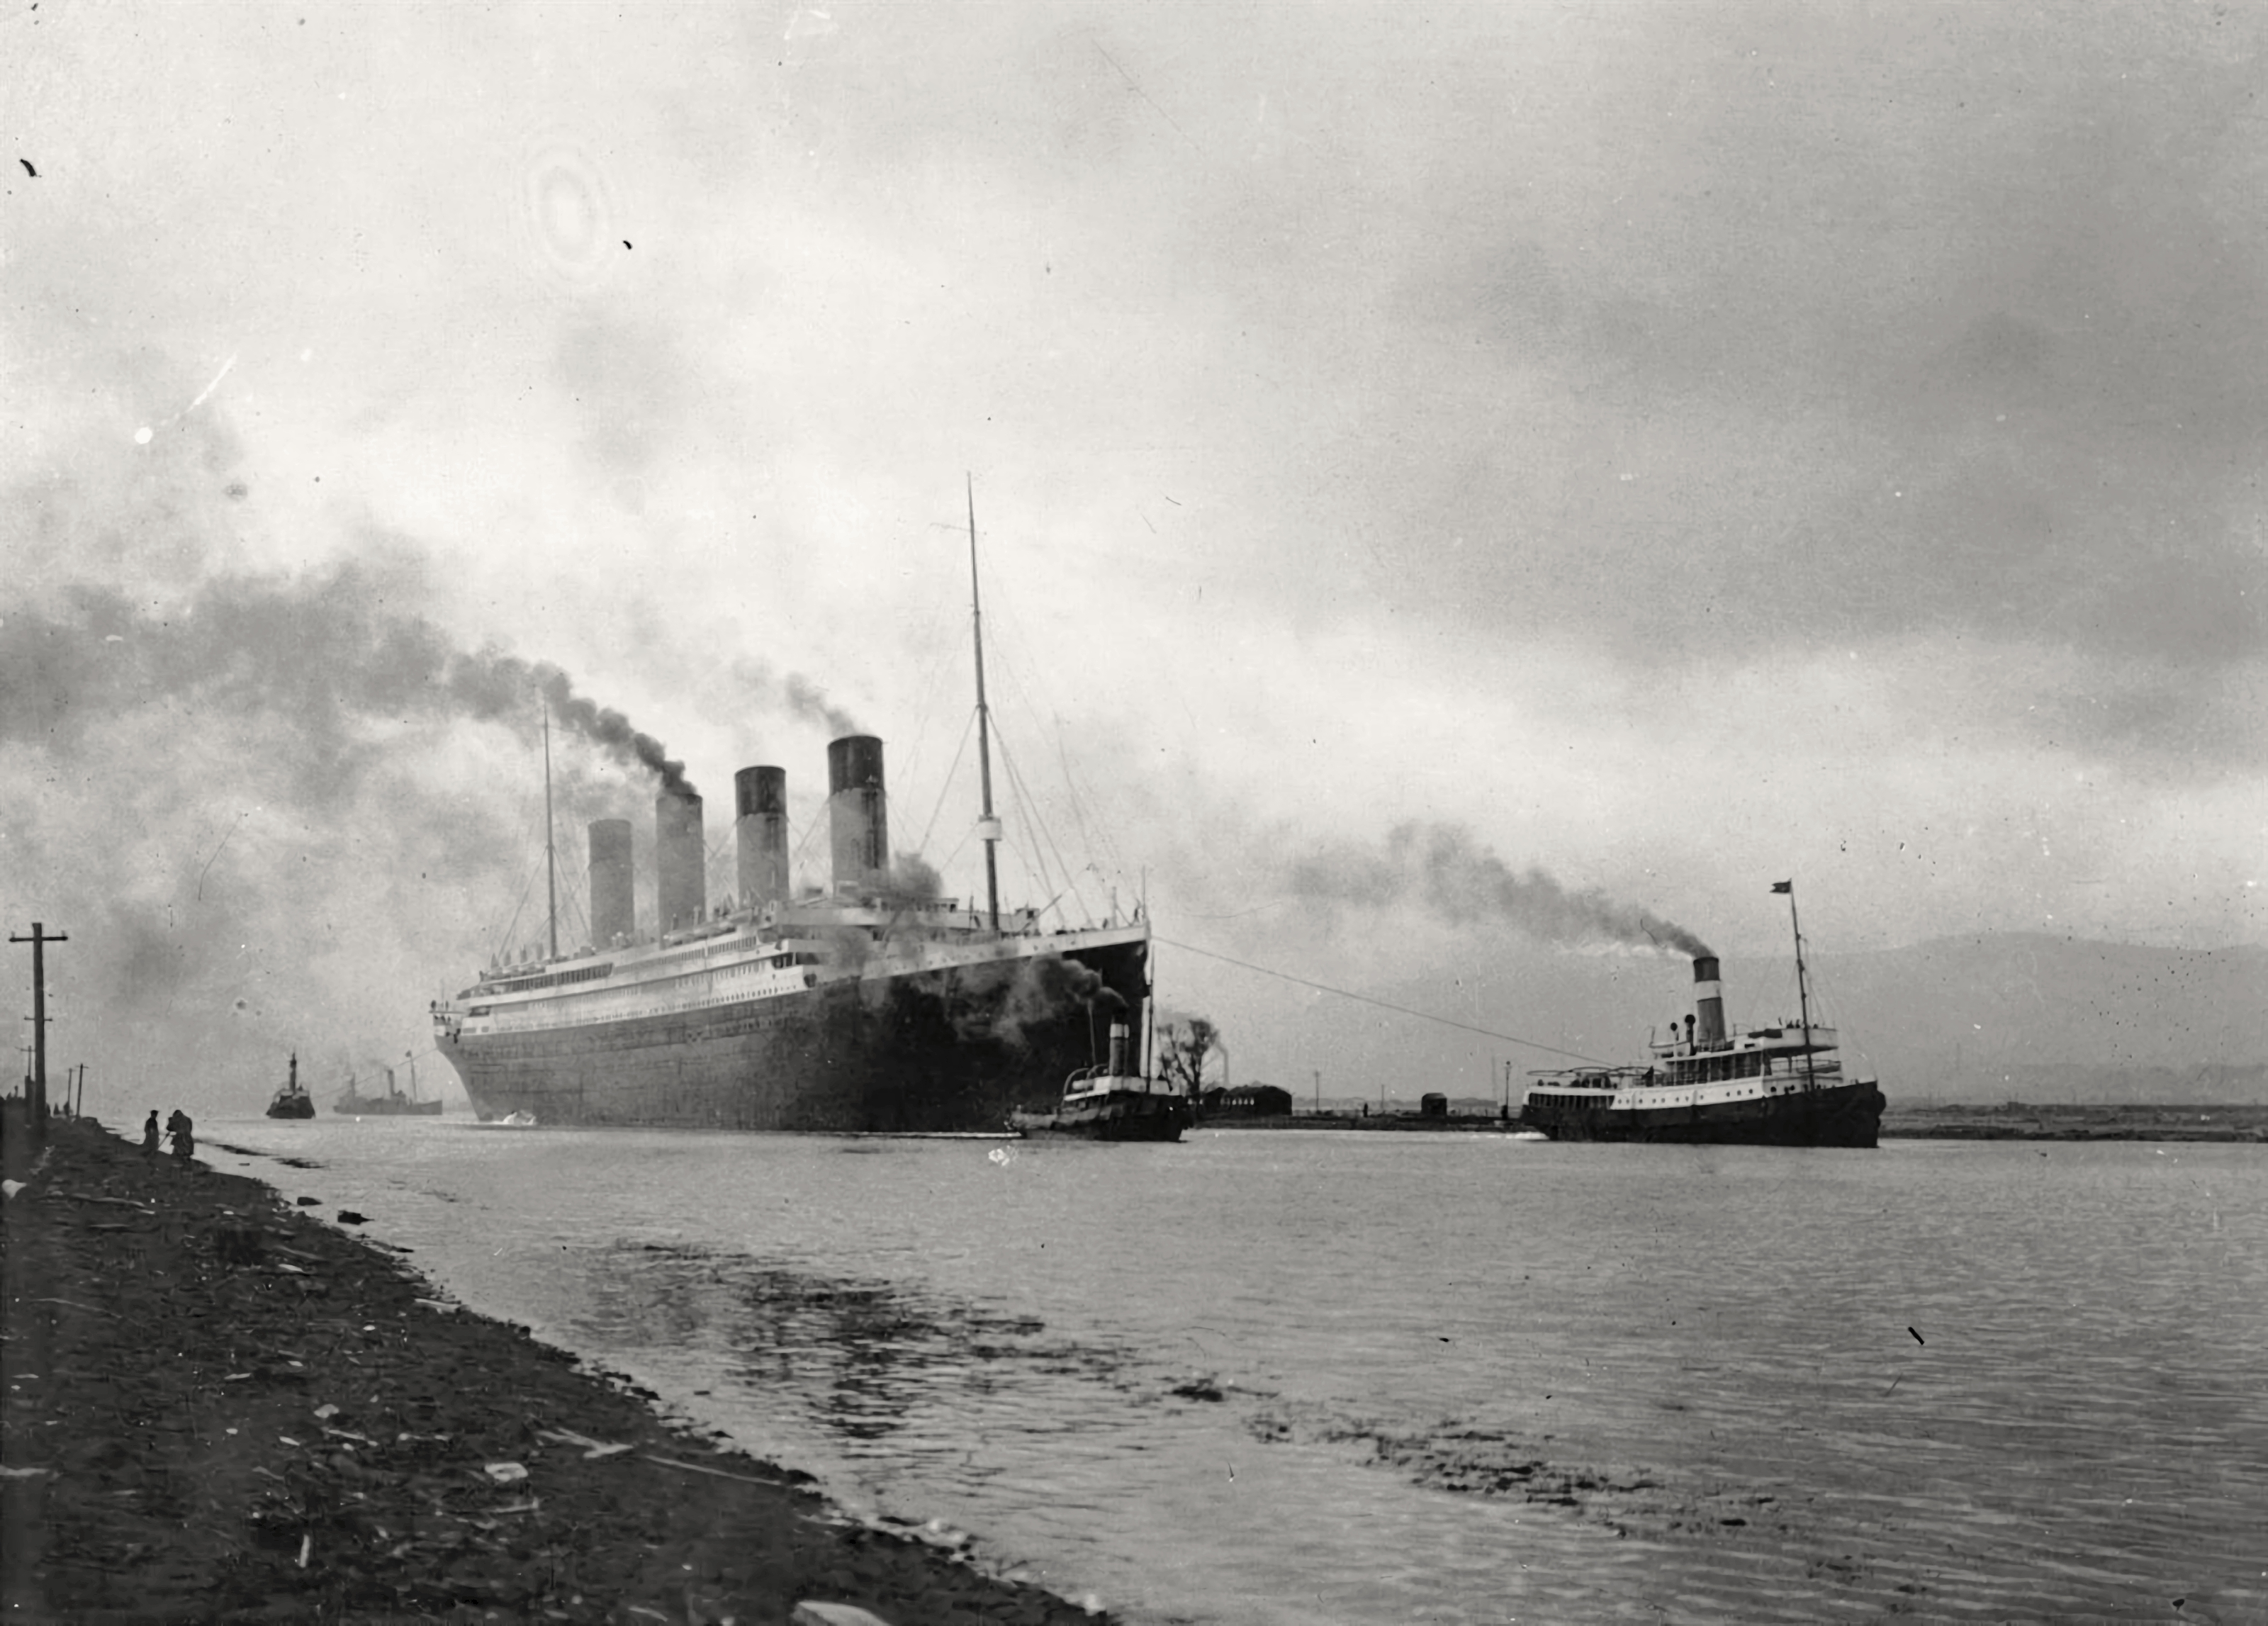 Sinking of the RMS Tit...